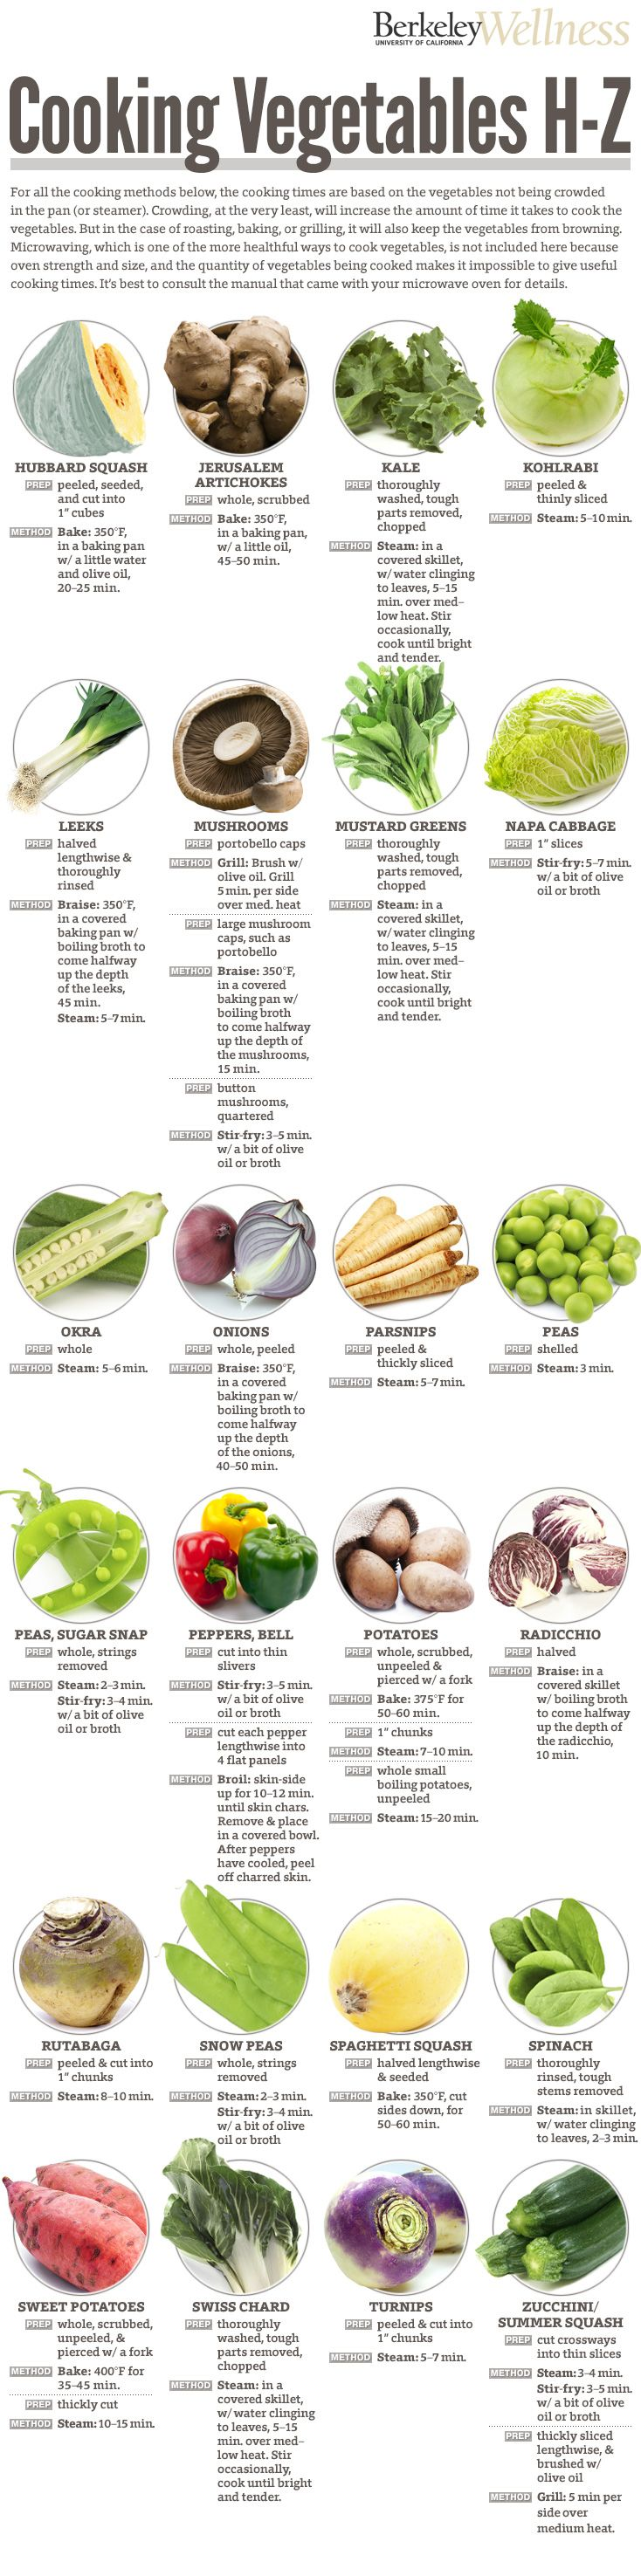 Cooking vegetables guide.